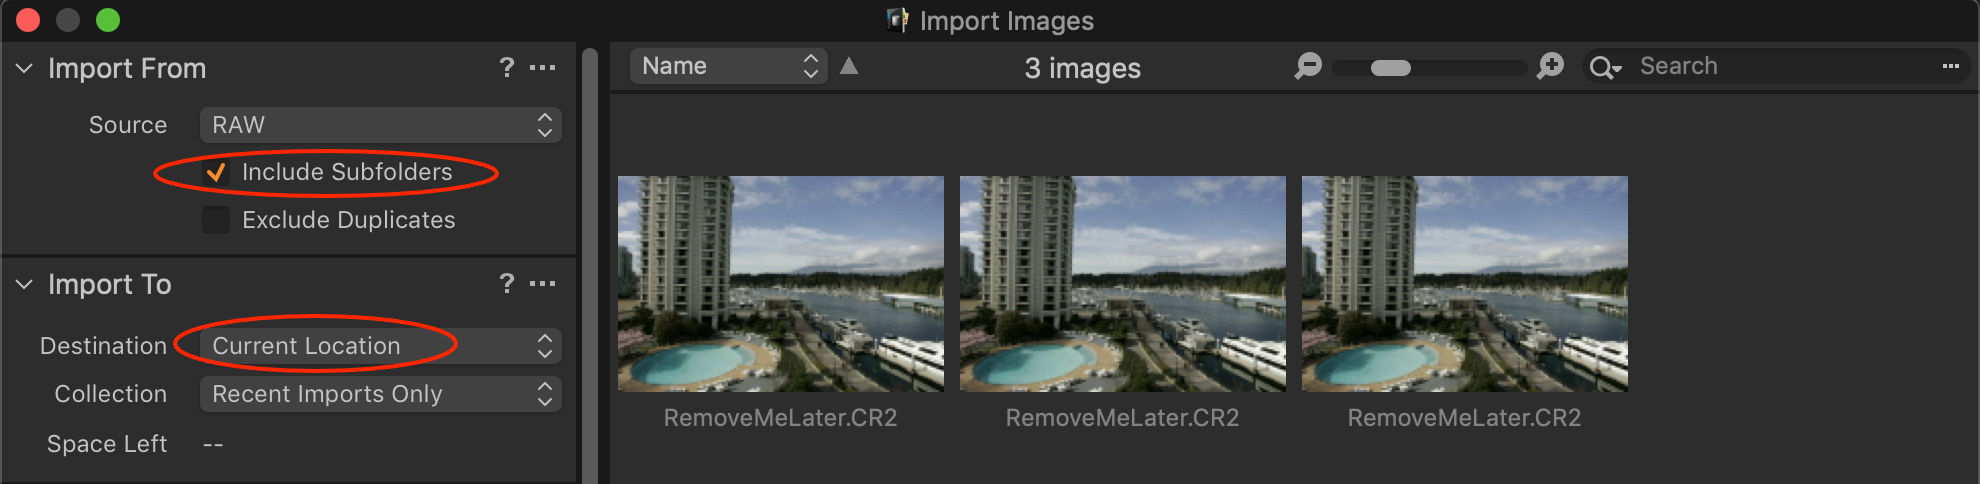 import images, to remove later, capture one 20